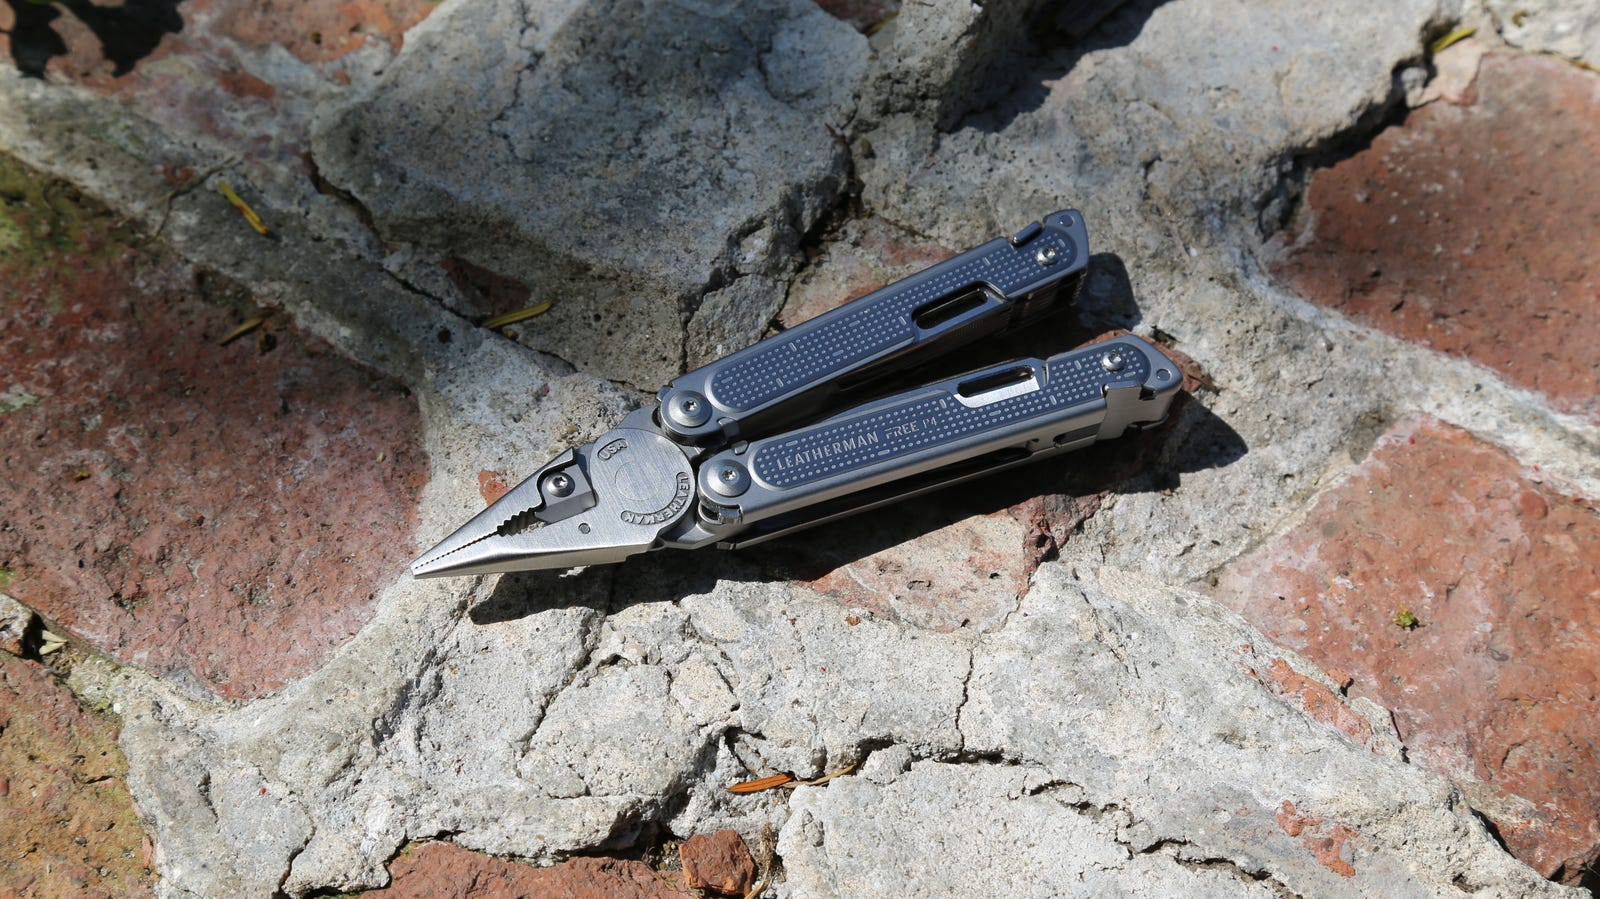 The Leatherman Free P4 in plier form